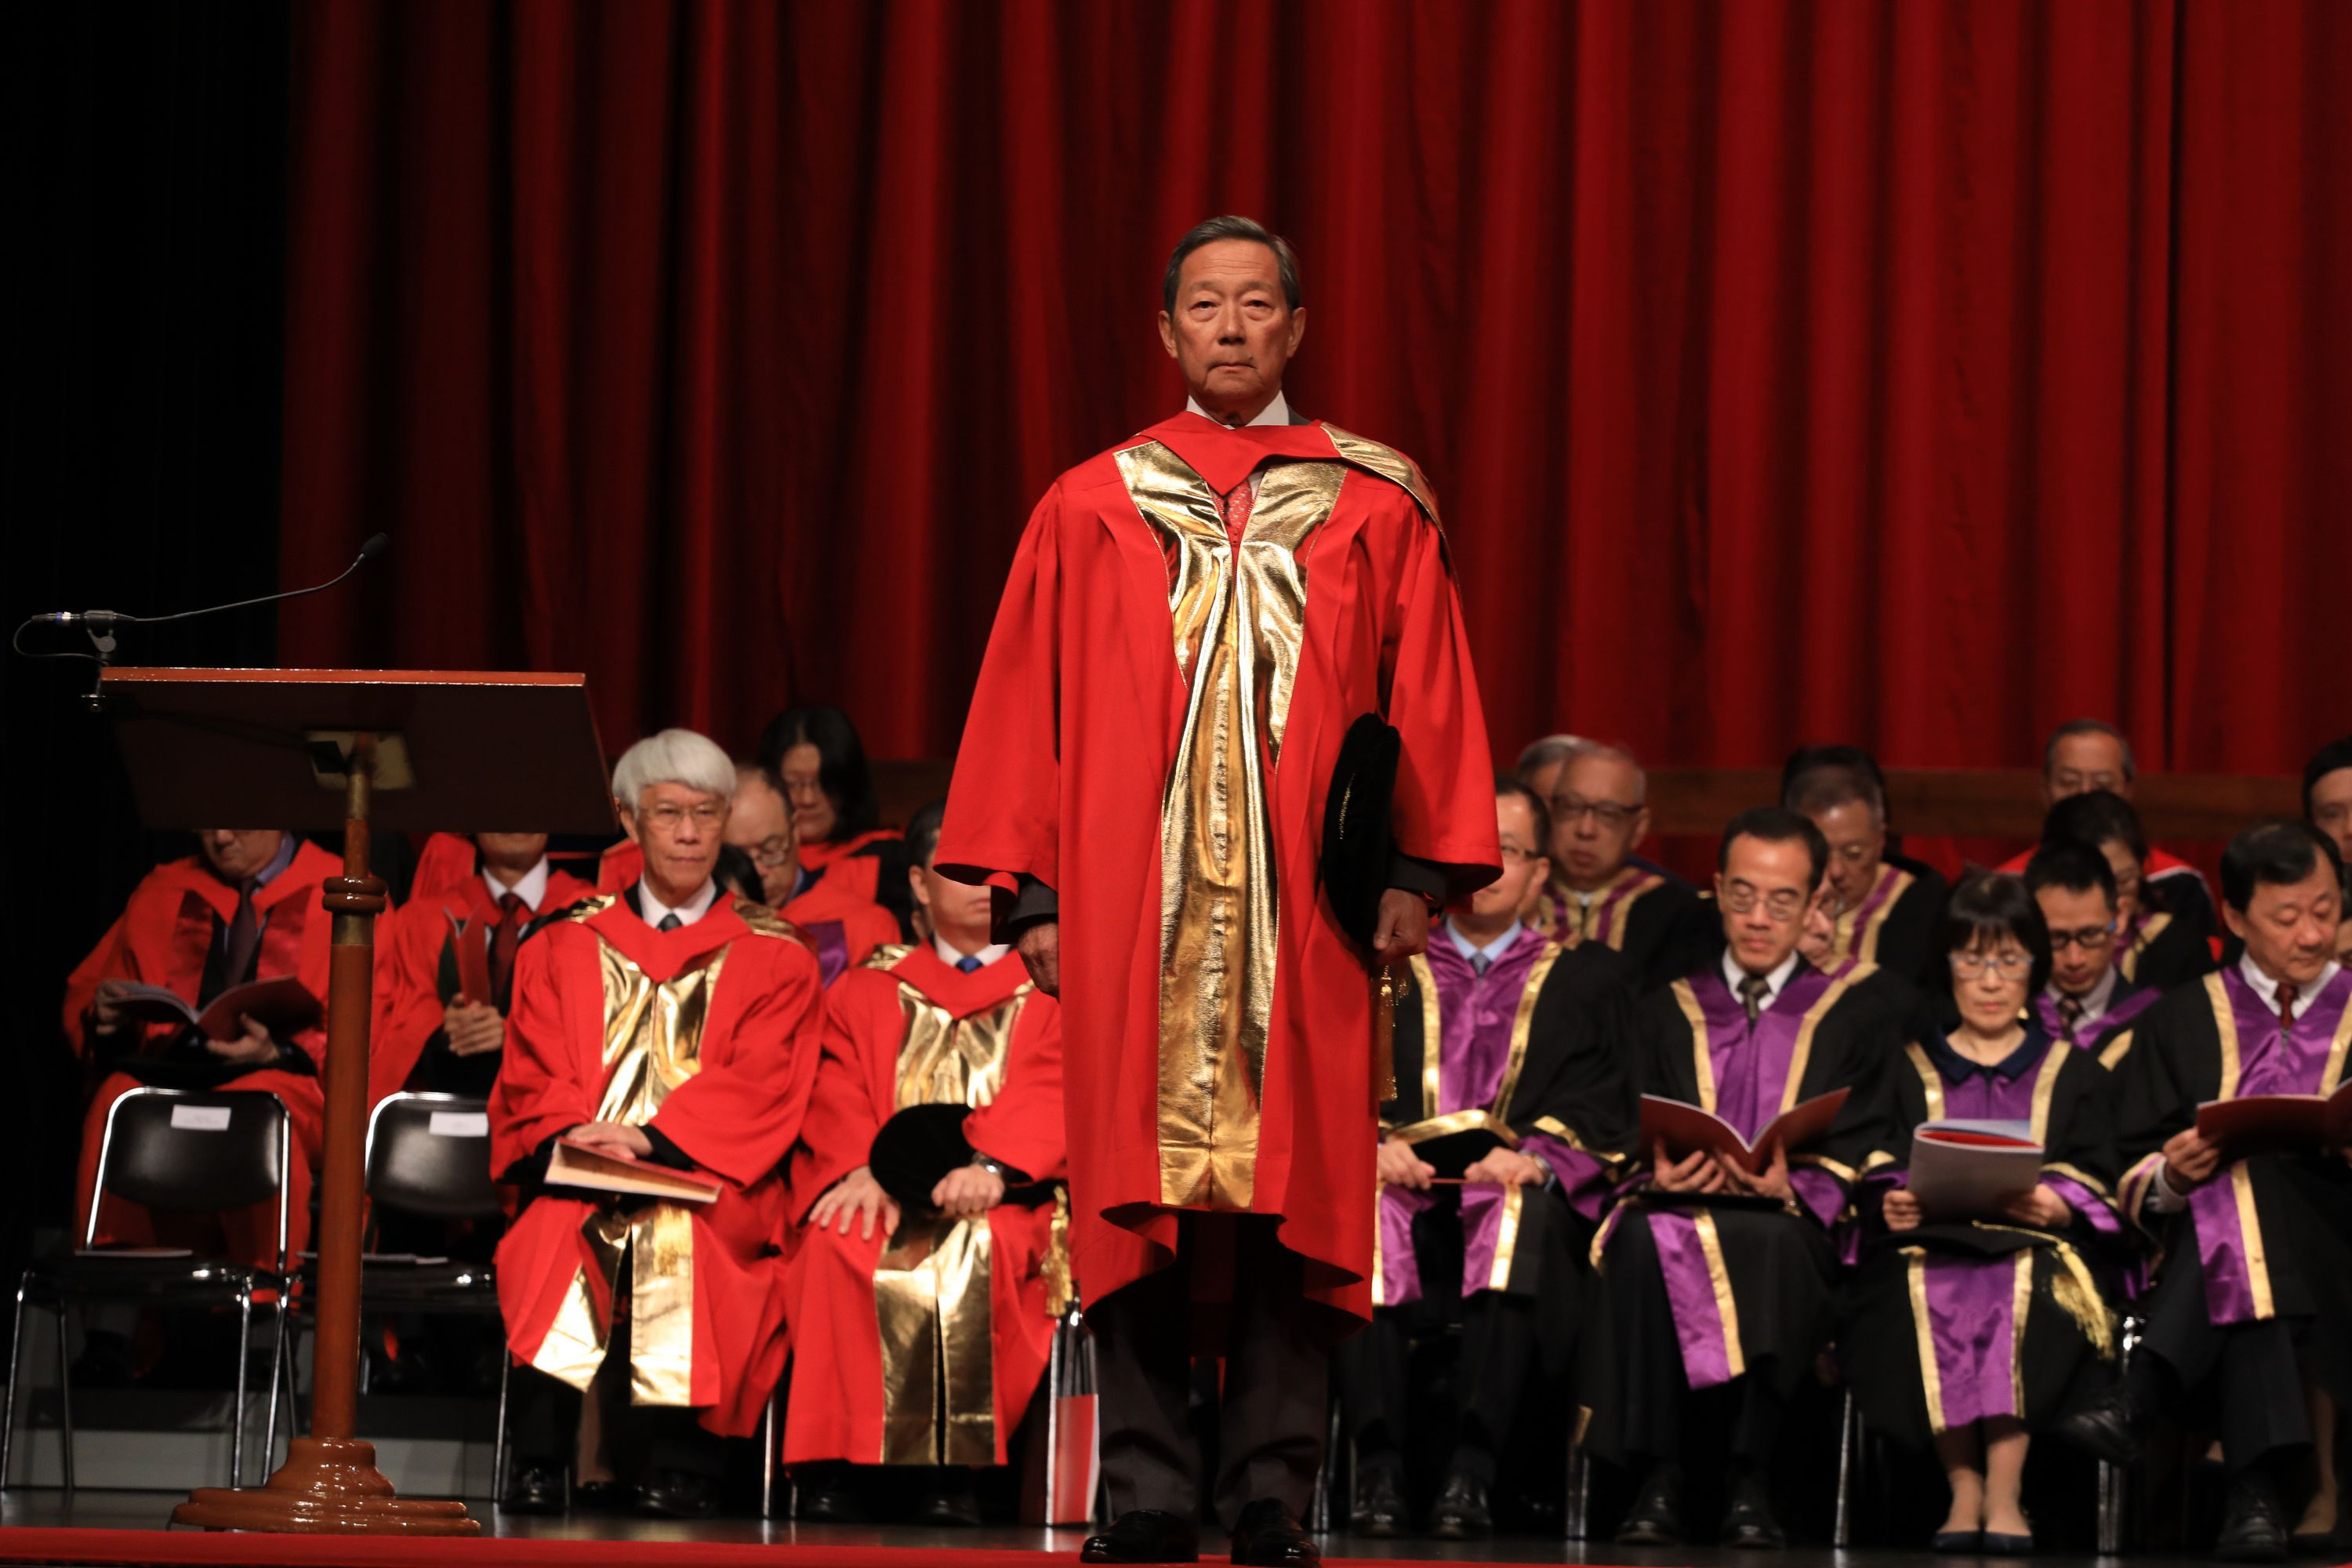 Dr. Ip Sik-on Simon receives the degree of Doctor of Social Science, honoris causa